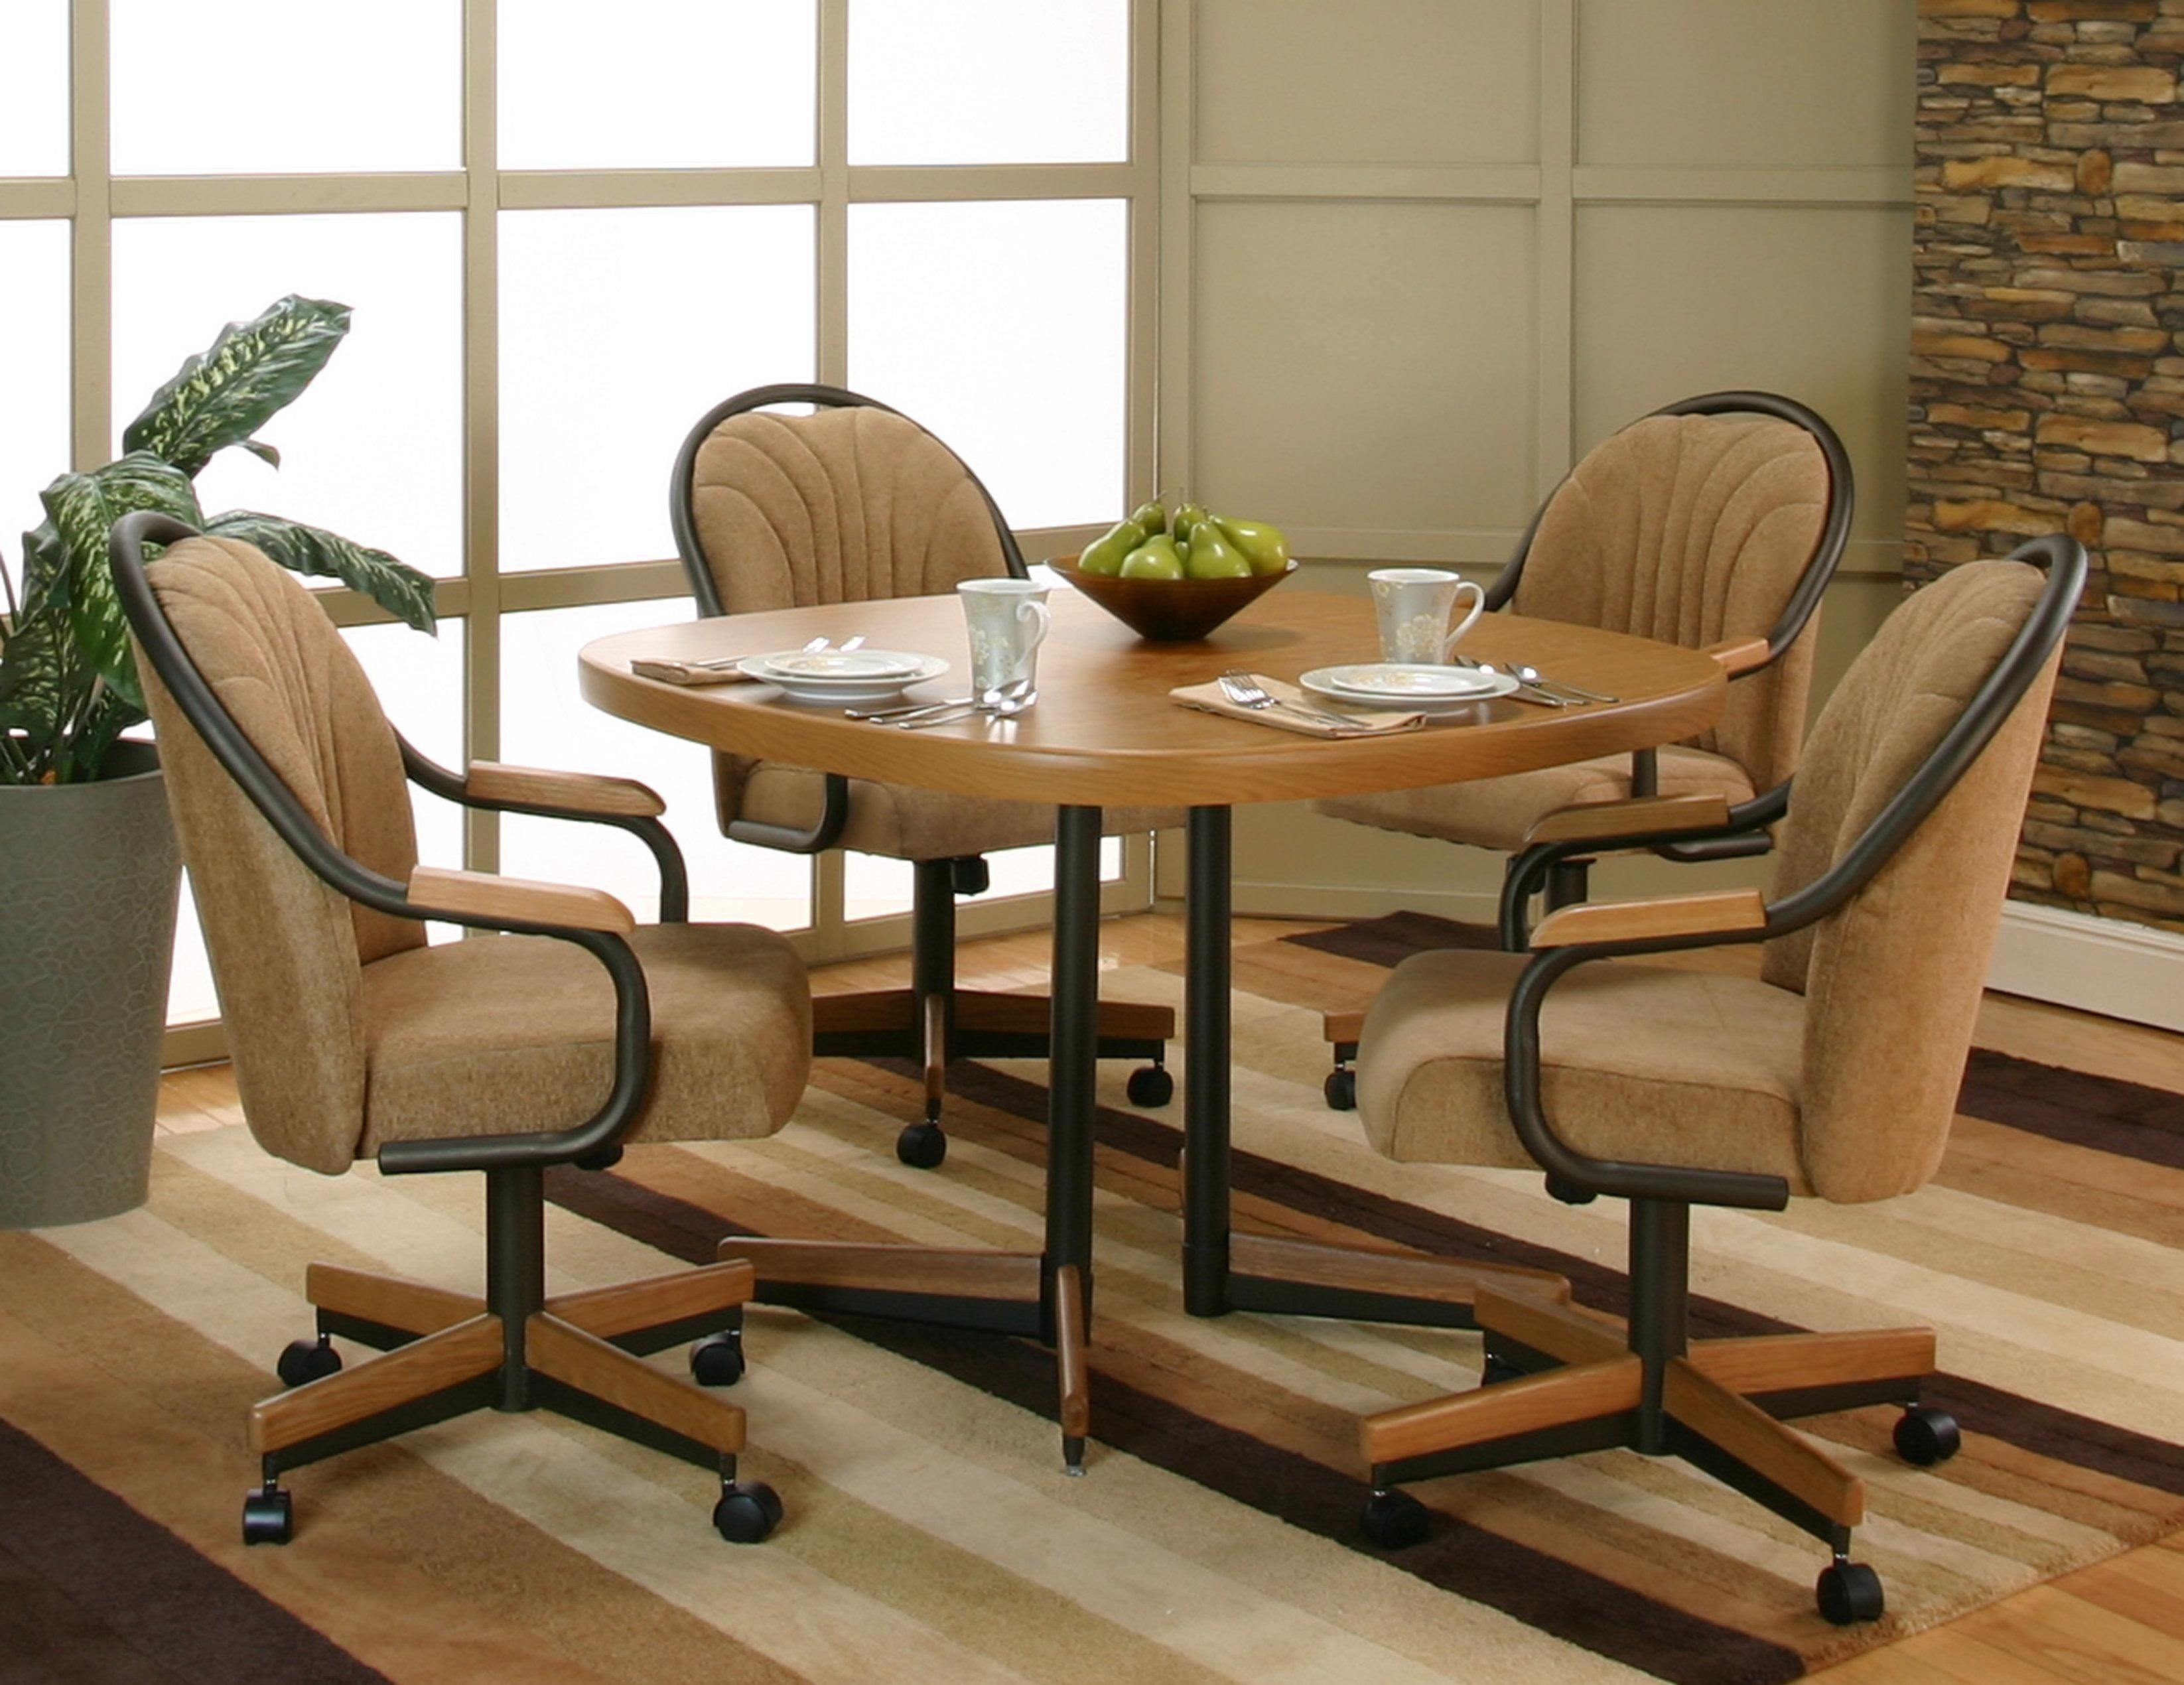 Swivel Dining Room Chairs Casters  Httpenricbataller Gorgeous Leather Swivel Dining Room Chairs Inspiration Design